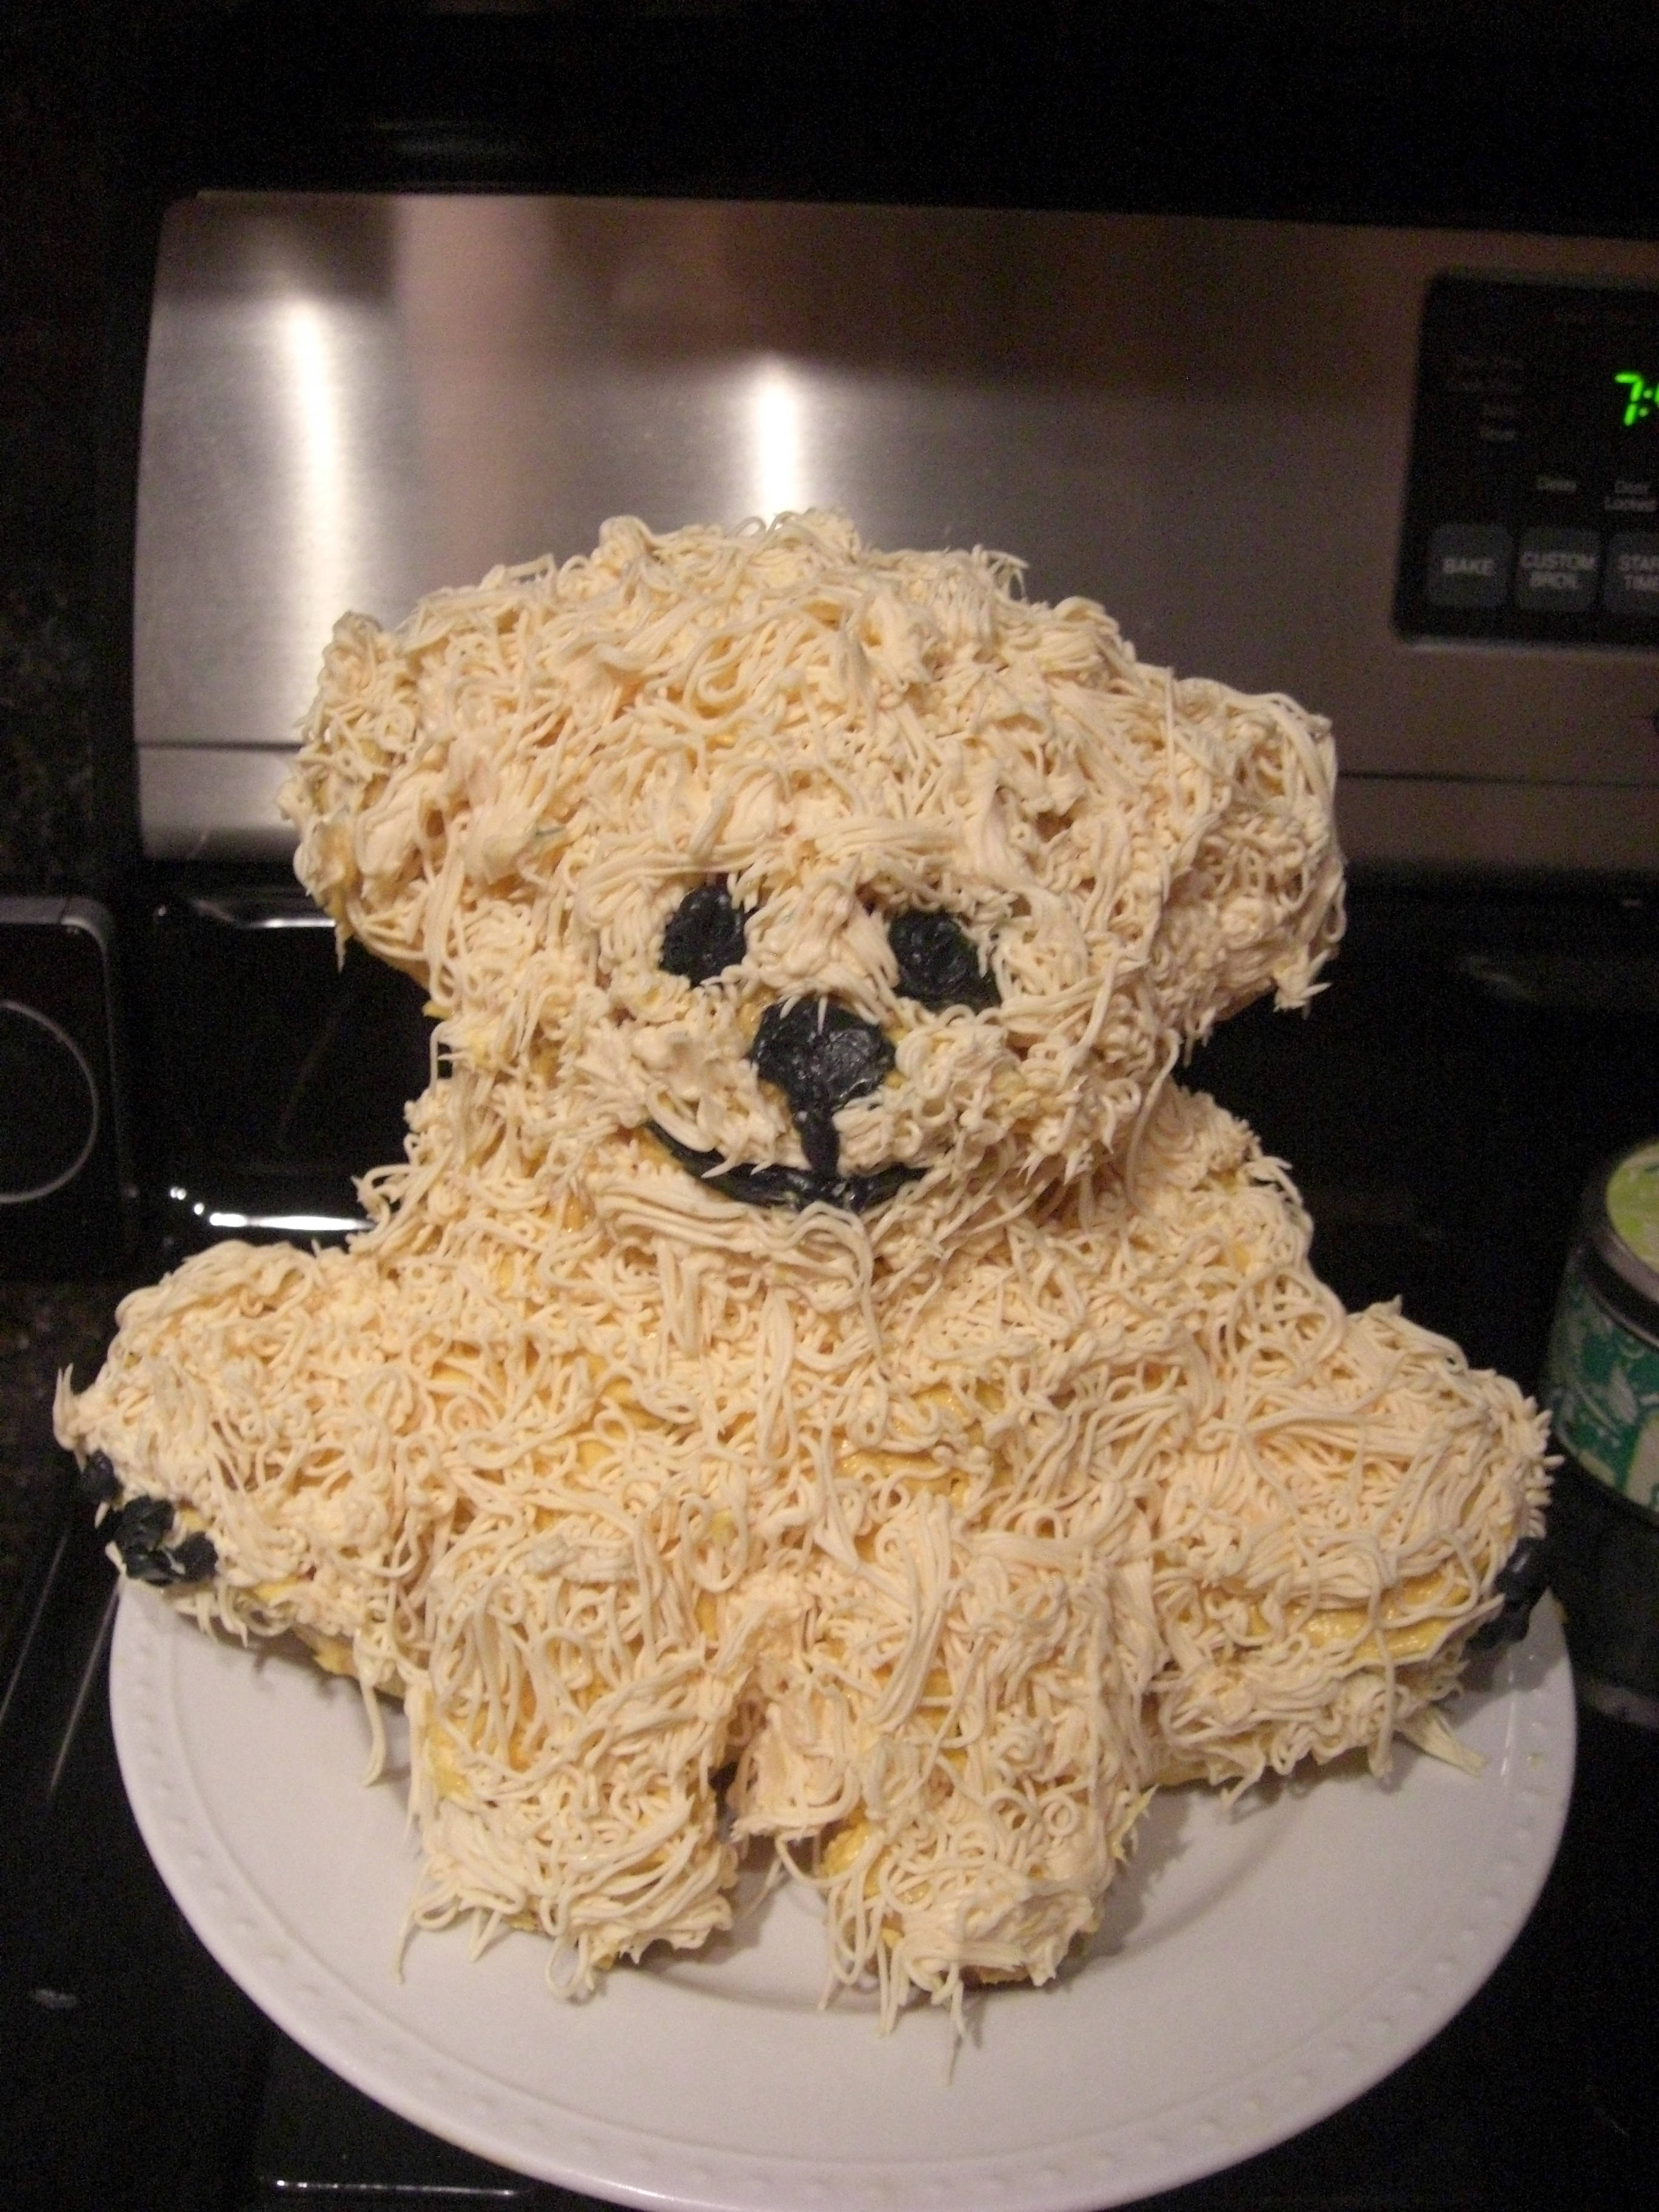 What Can I Bake A Doggy Cake For My Puppy